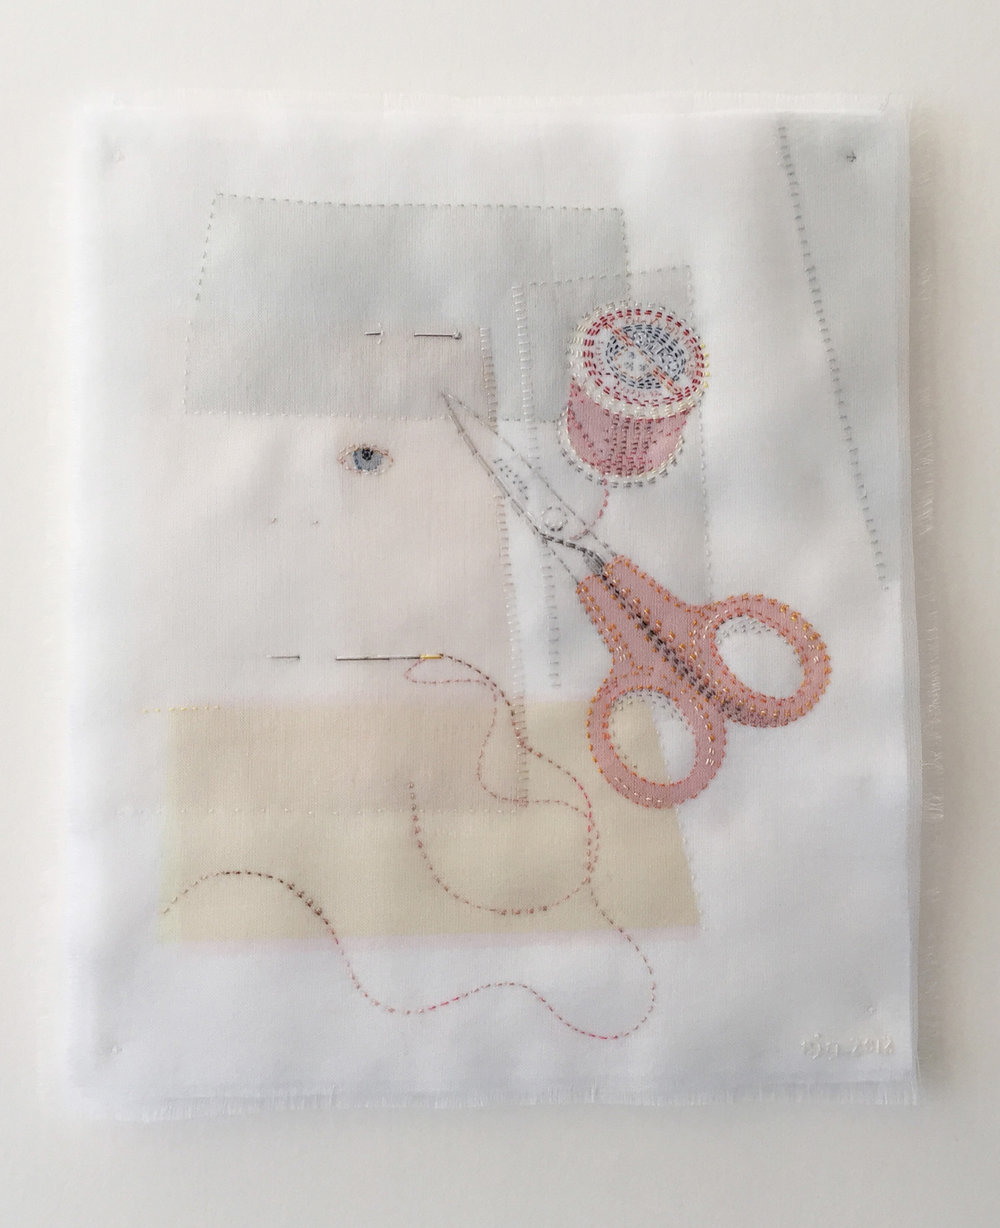 Portrait of a Textile Artist - Silk organza appliqué, hand stitched - Available at Contemporary Applied Arts